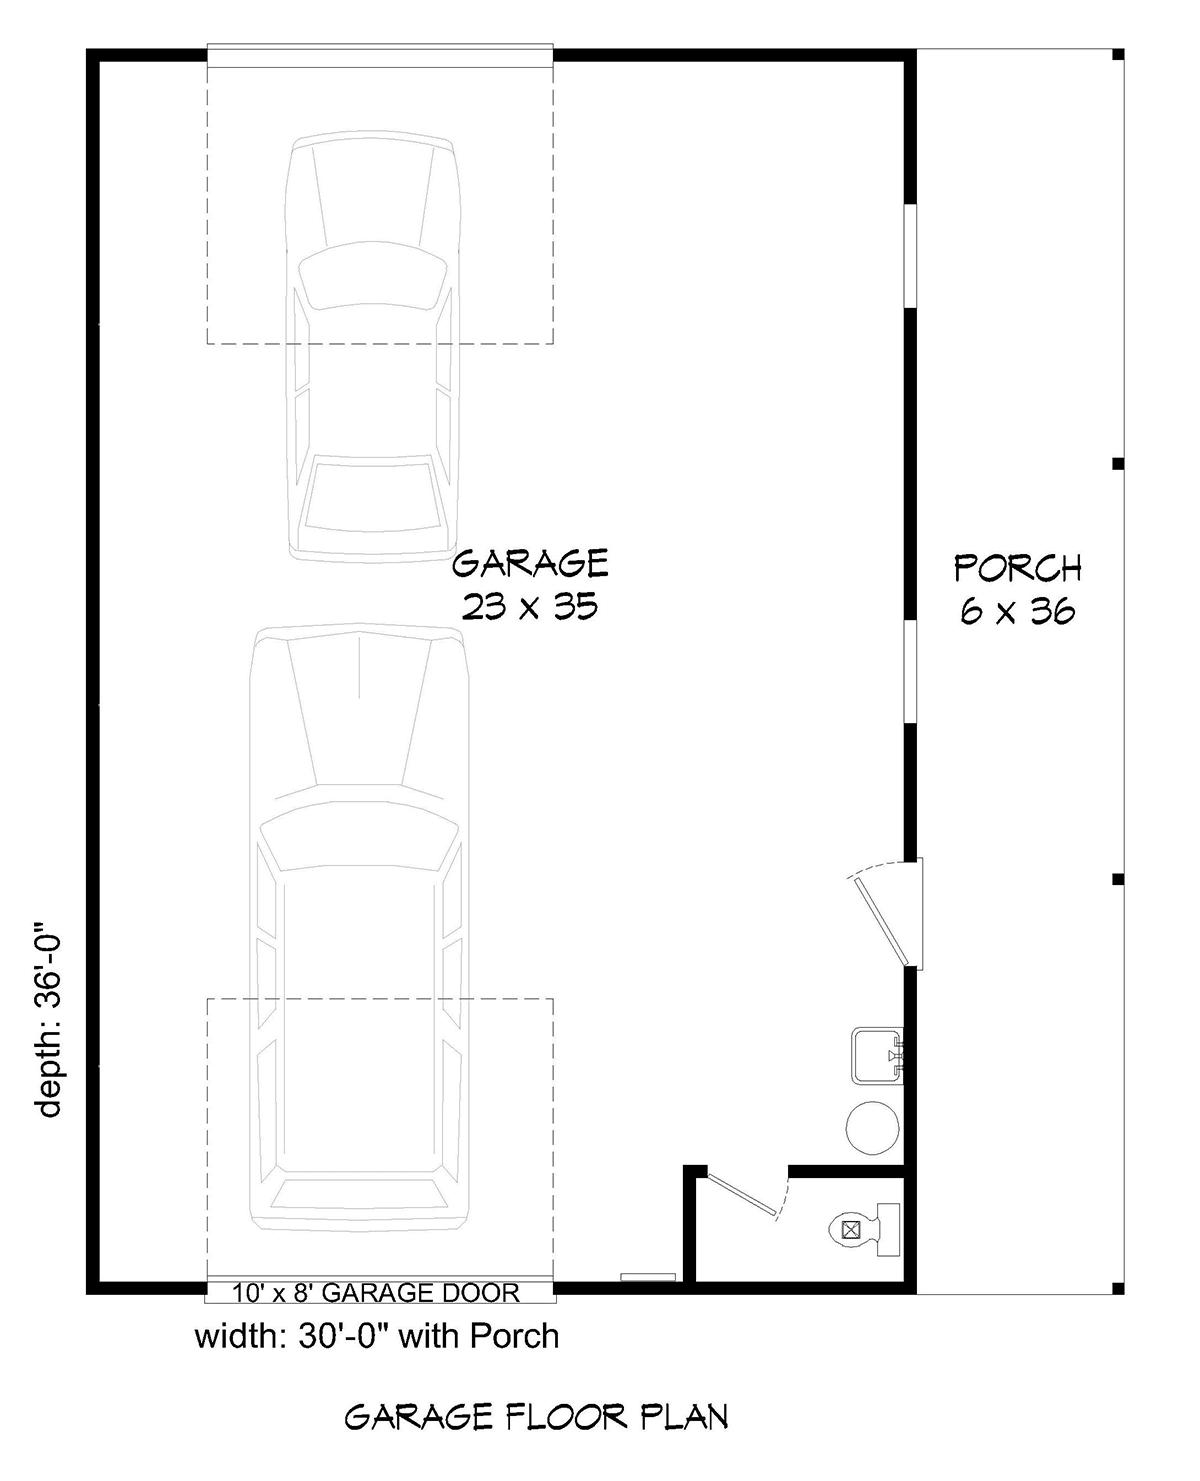 TWO SIDE ACCESSES GARAGE FLOOR PLANS